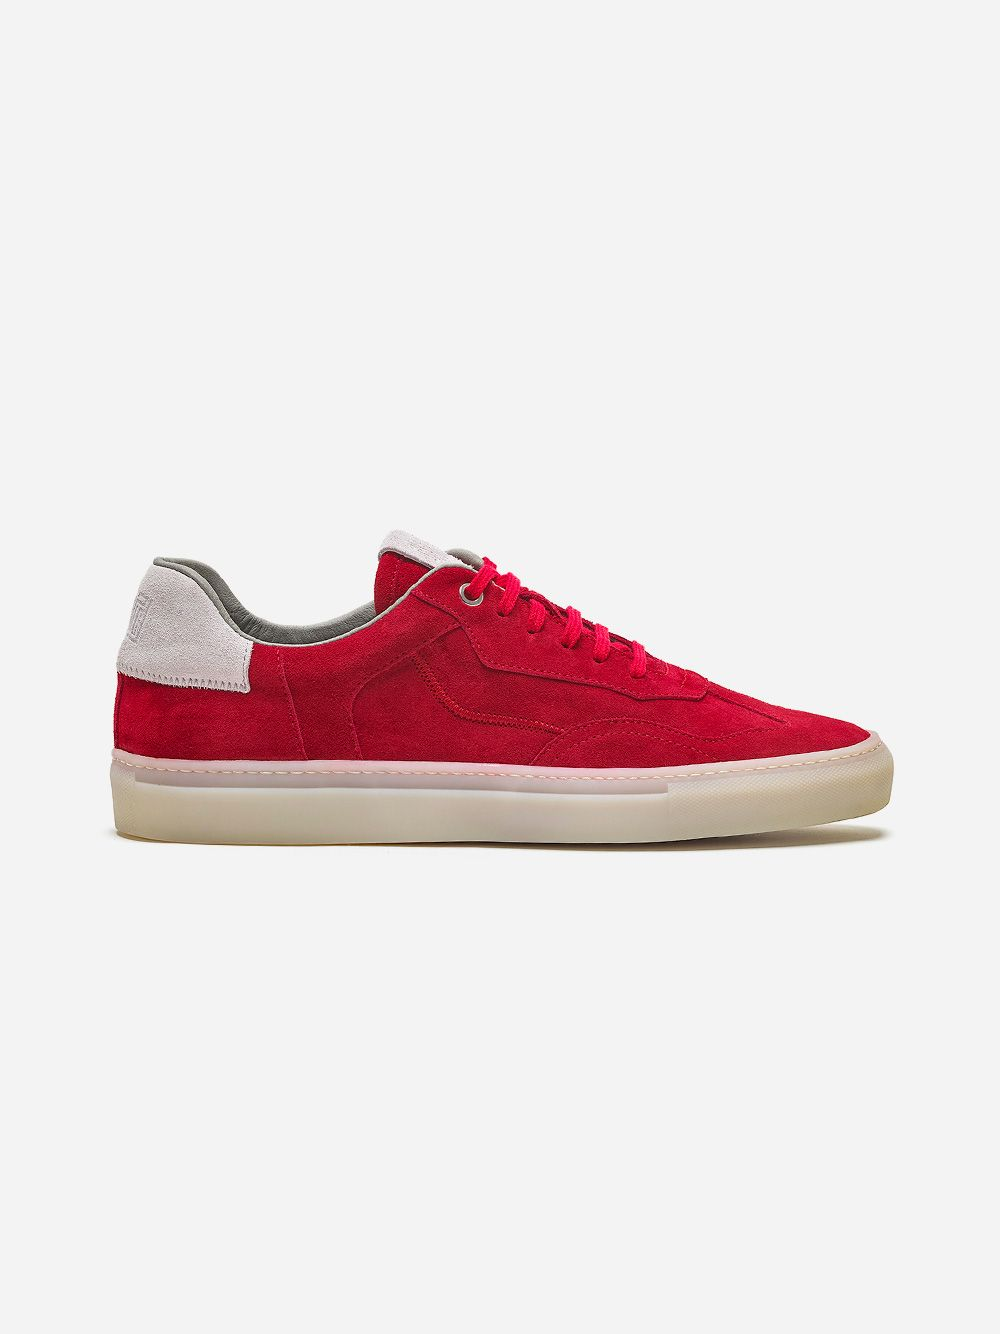 Sapatilhas Ice Red | Last Sole